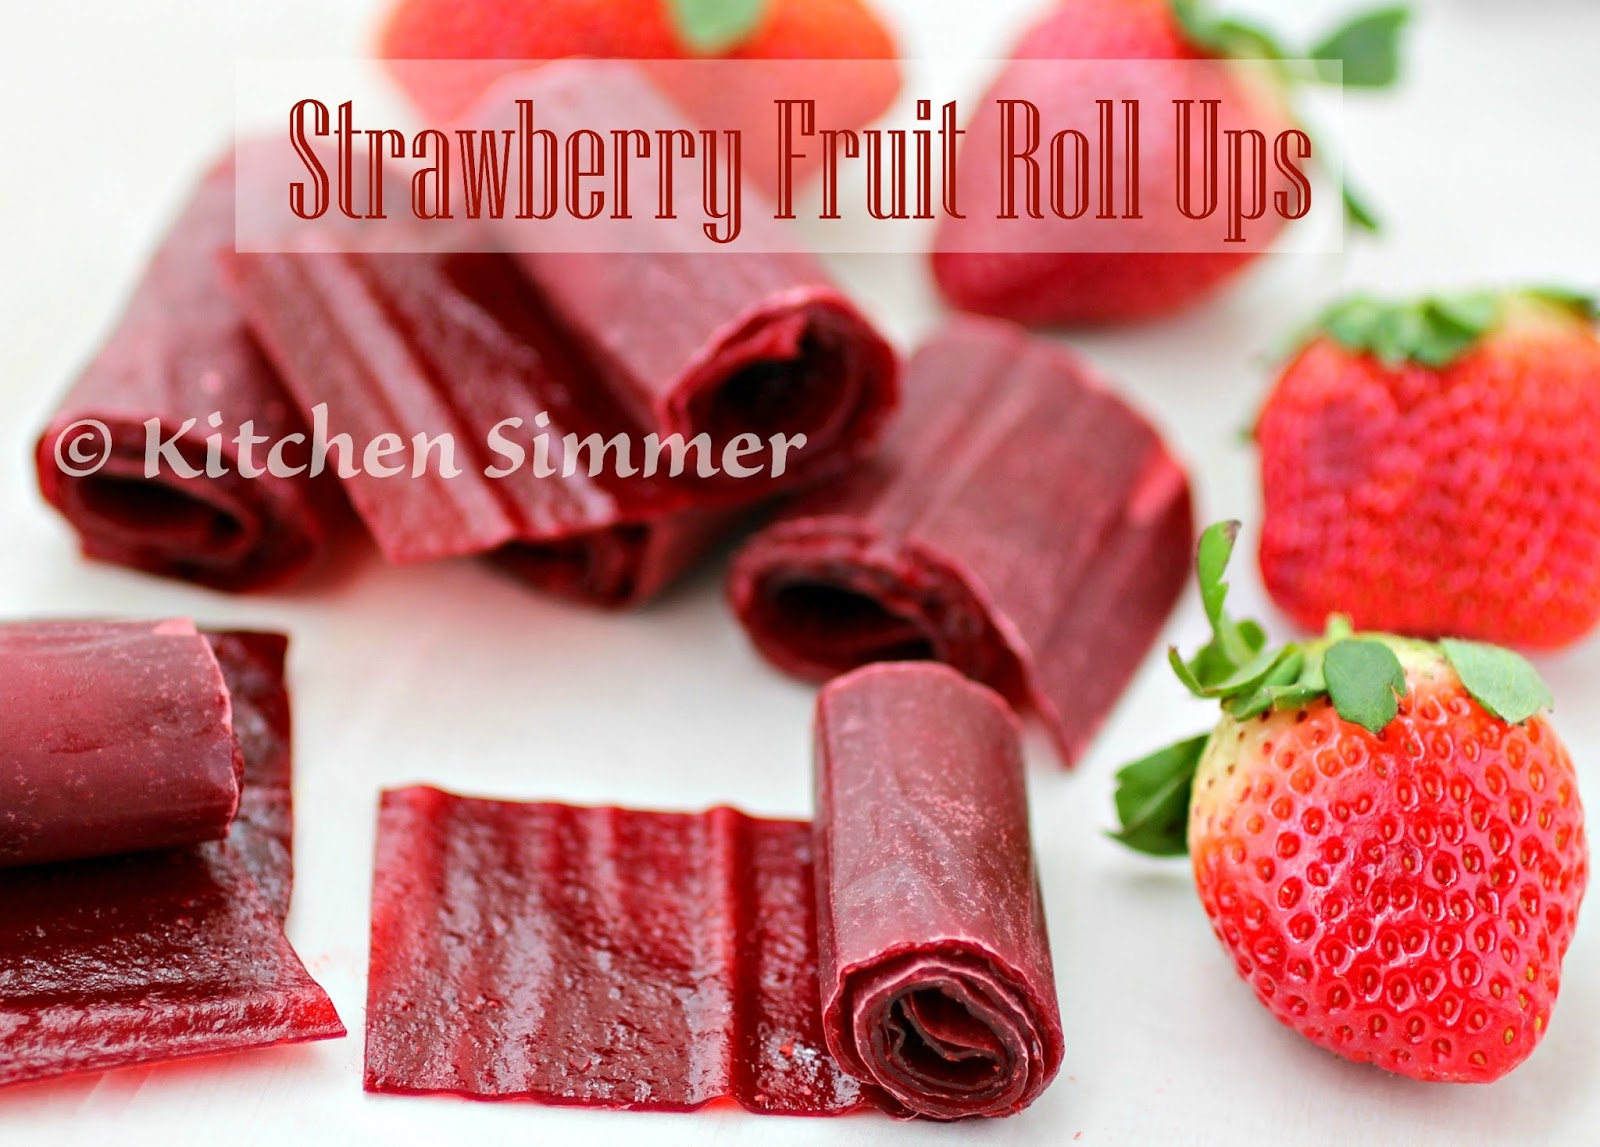 Kitchen Simmer: Strawberry Fruit Roll Ups